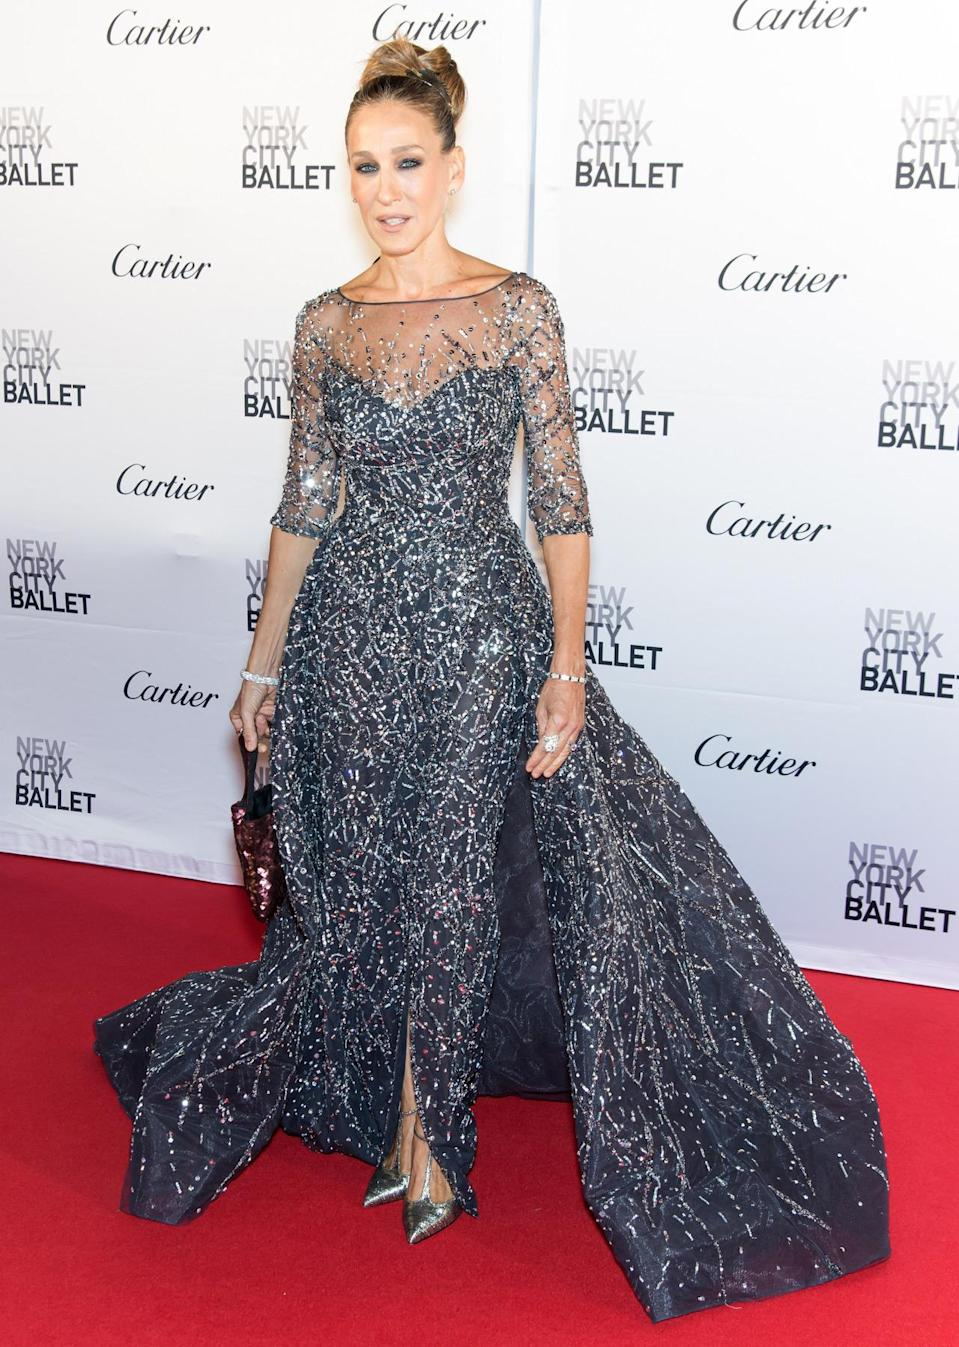 Sarah Jessica Parker in Zuhair Murad at the New York City Ballet fall gala. [Photo: Getty]